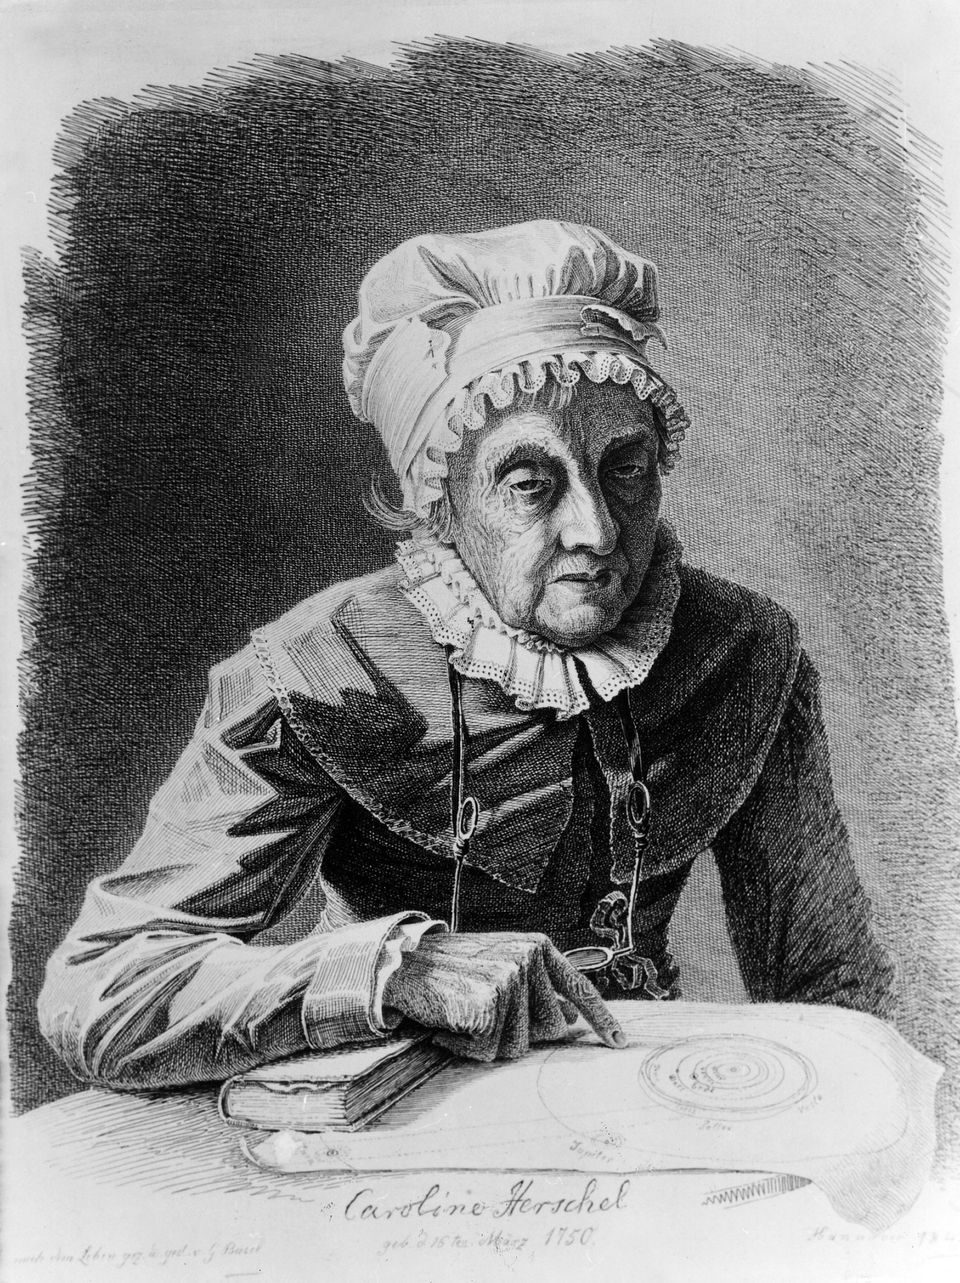 "<a href=""http://www.space.com/17439-caroline-herschel.html"" target=""_blank"">Caroline Herschel</a> was a German astronomer who"